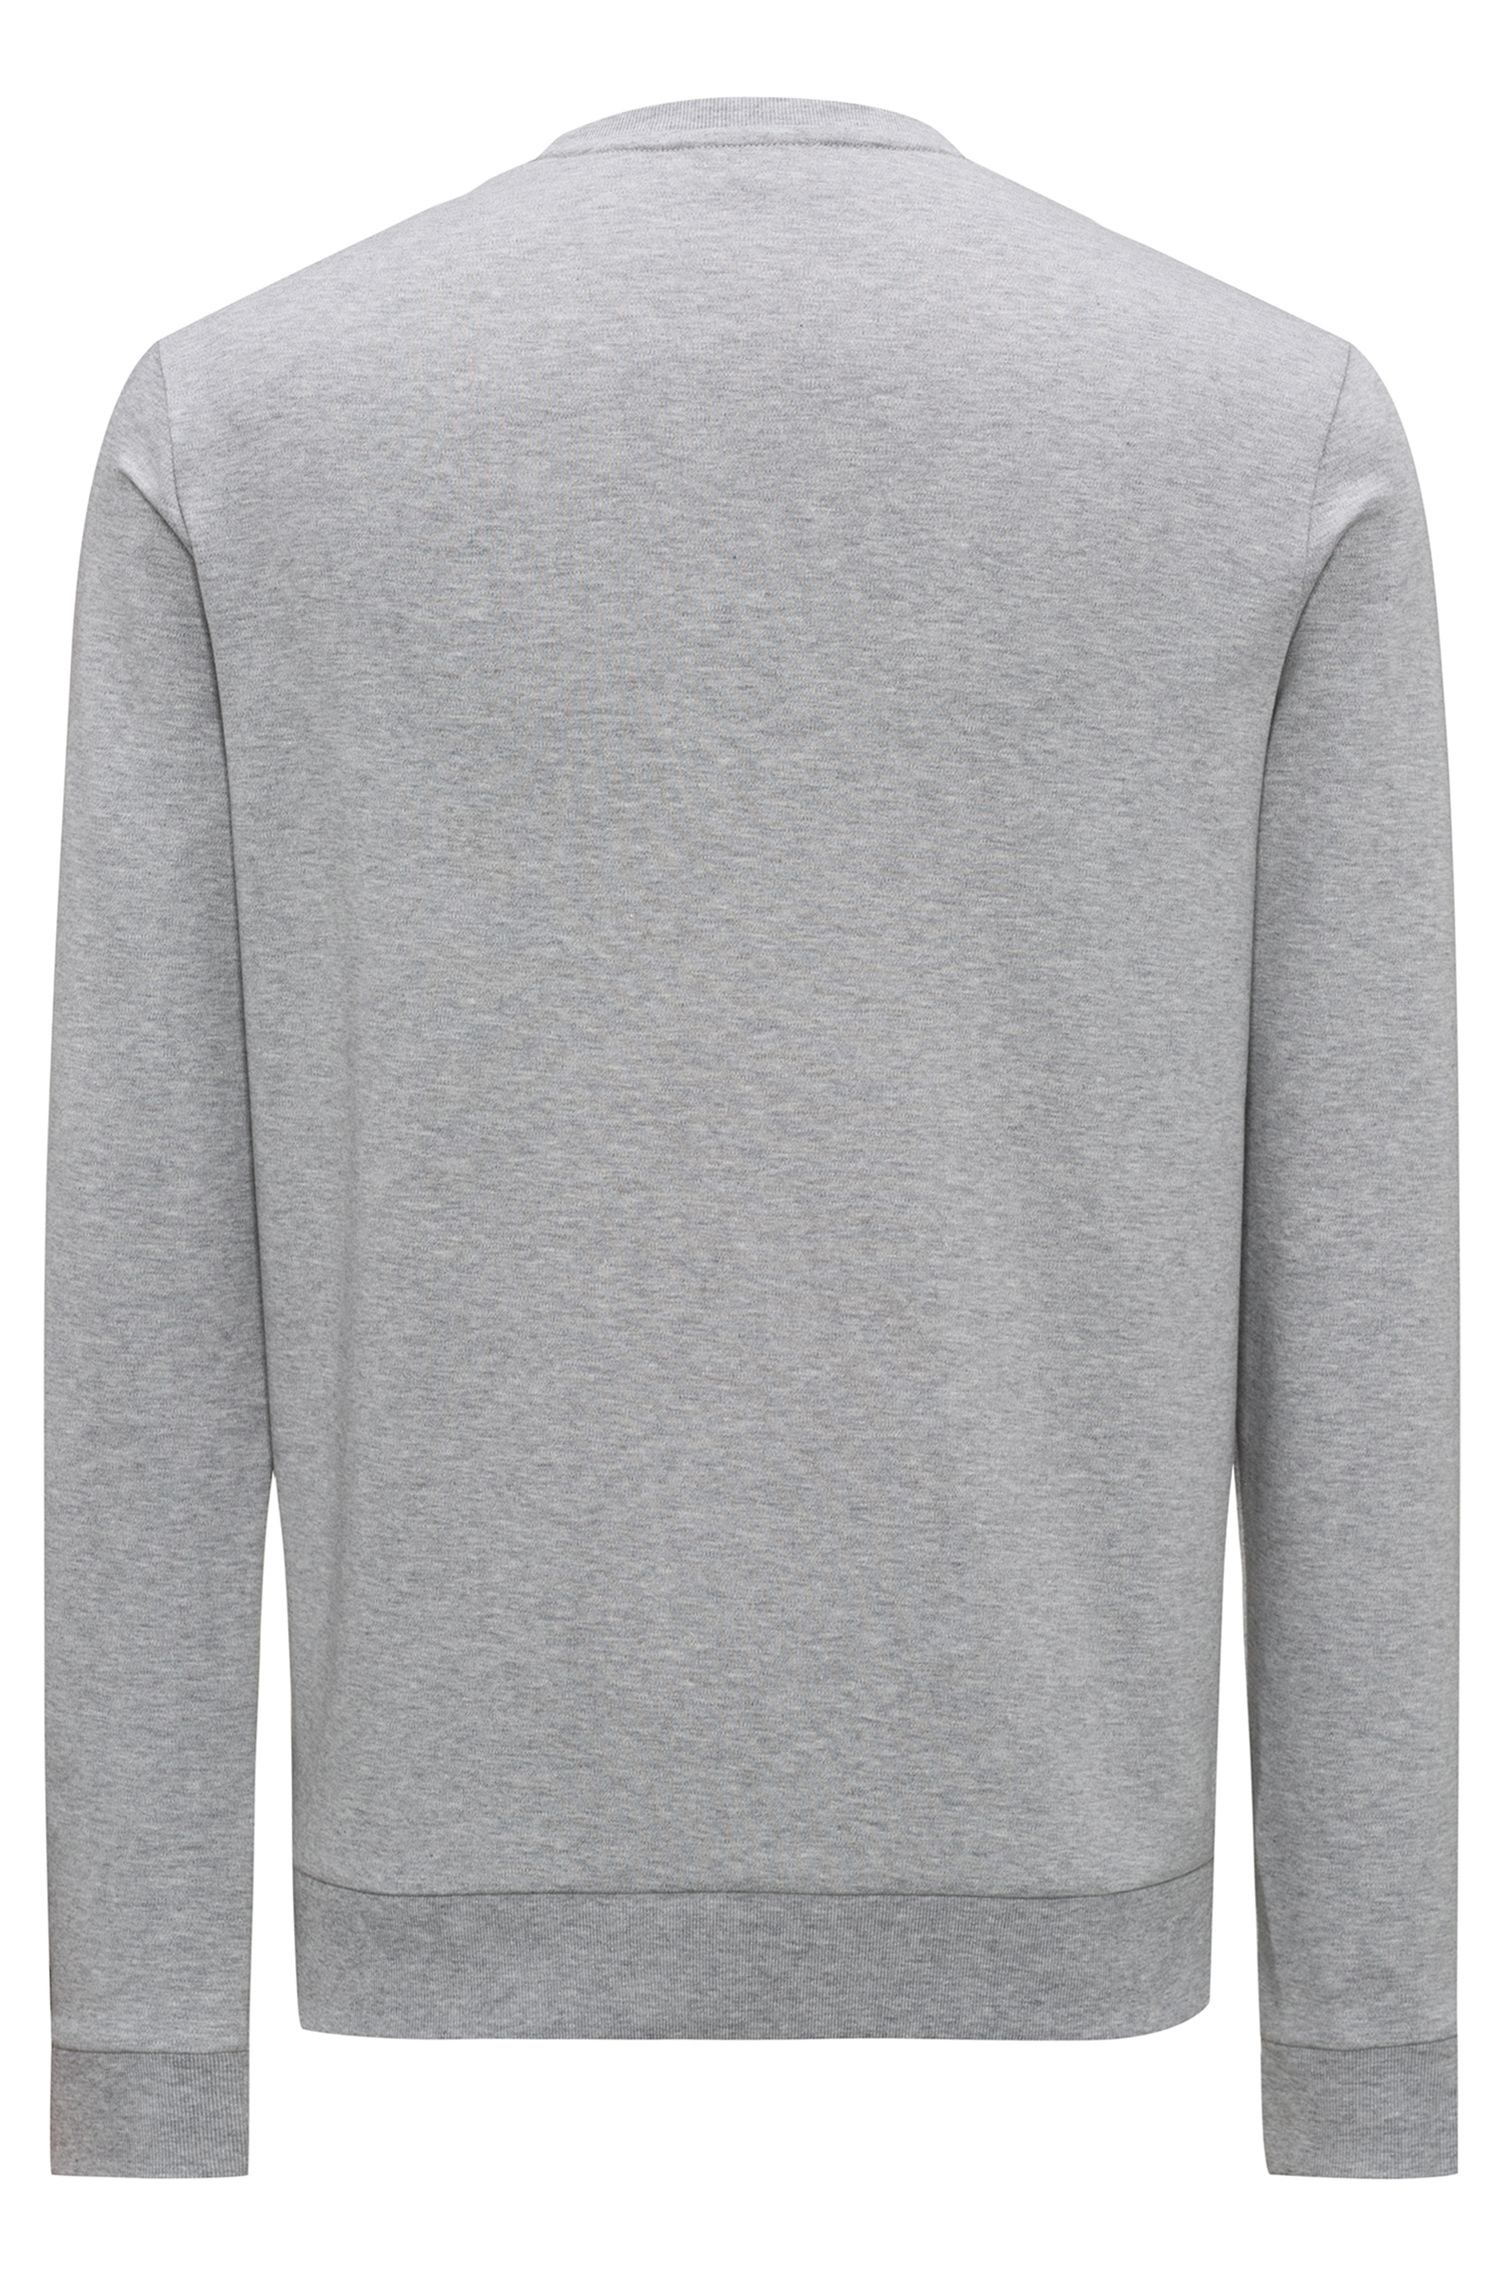 Sudadera regular fit en algodón interlock con logo invertido, Gris claro